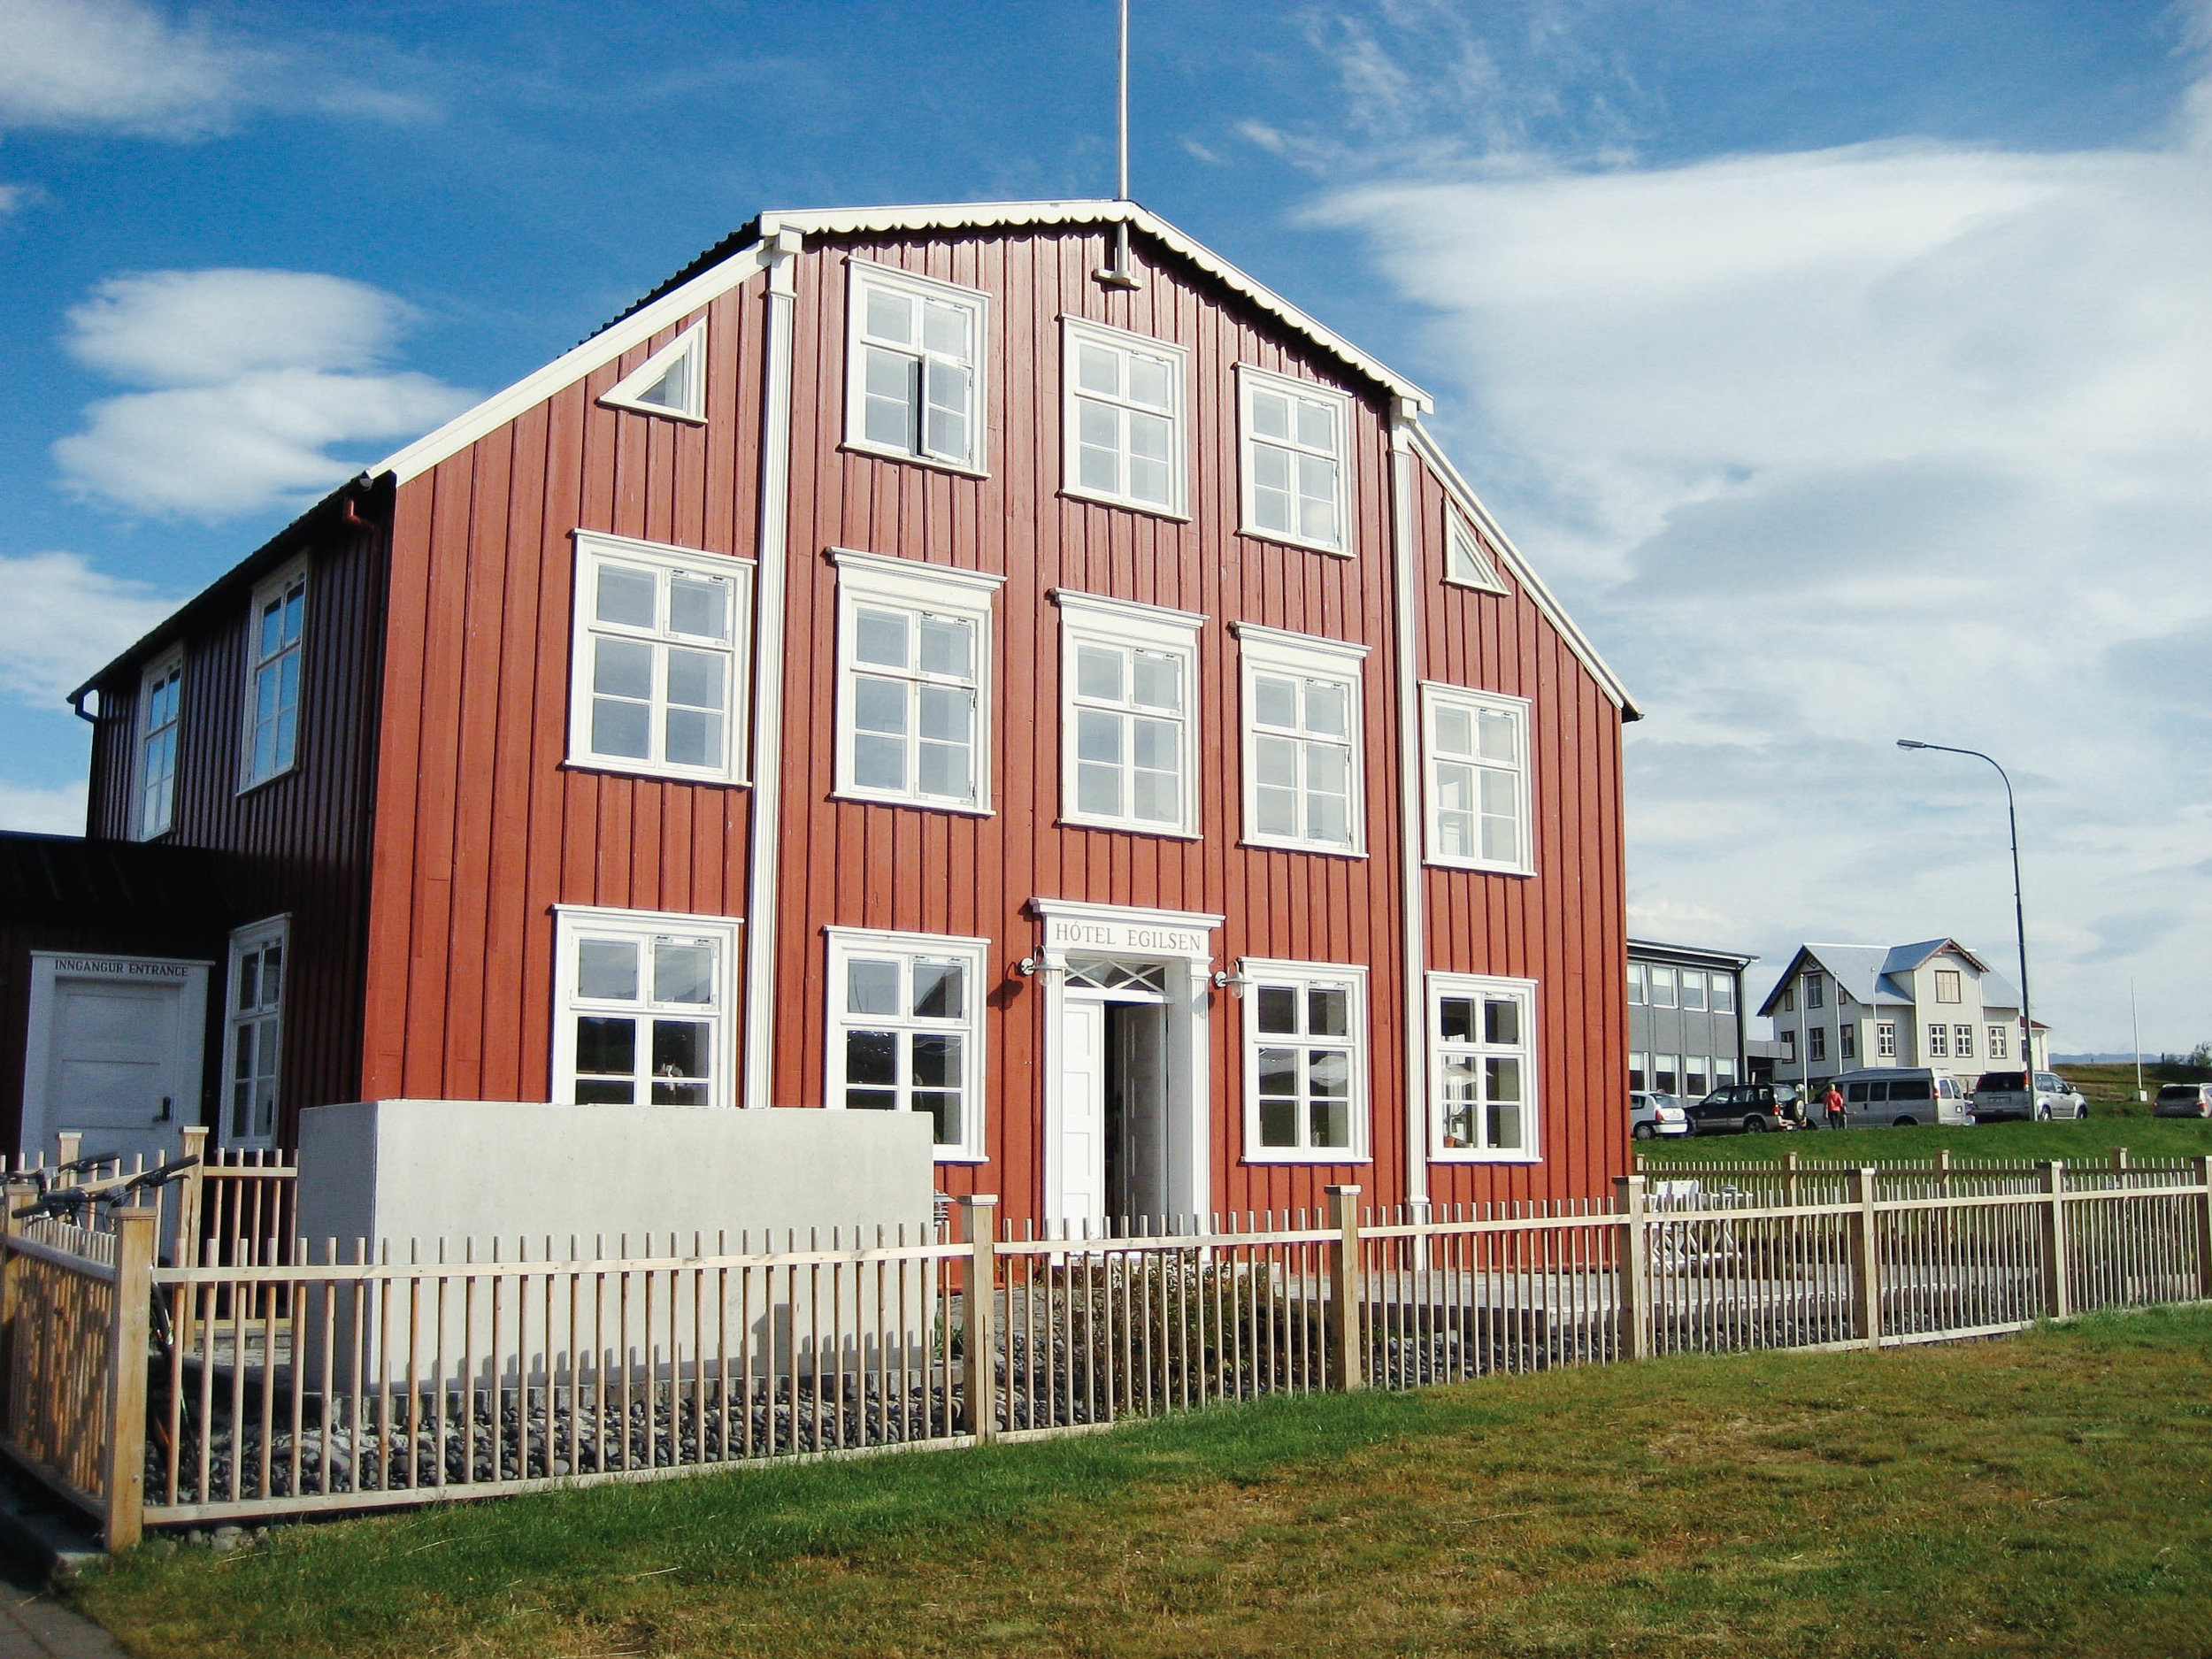 No room at the inn. The inn being this stunning Hotel Egilsen in Stykkishólmur, which was full when we inquired a few weeks prior.